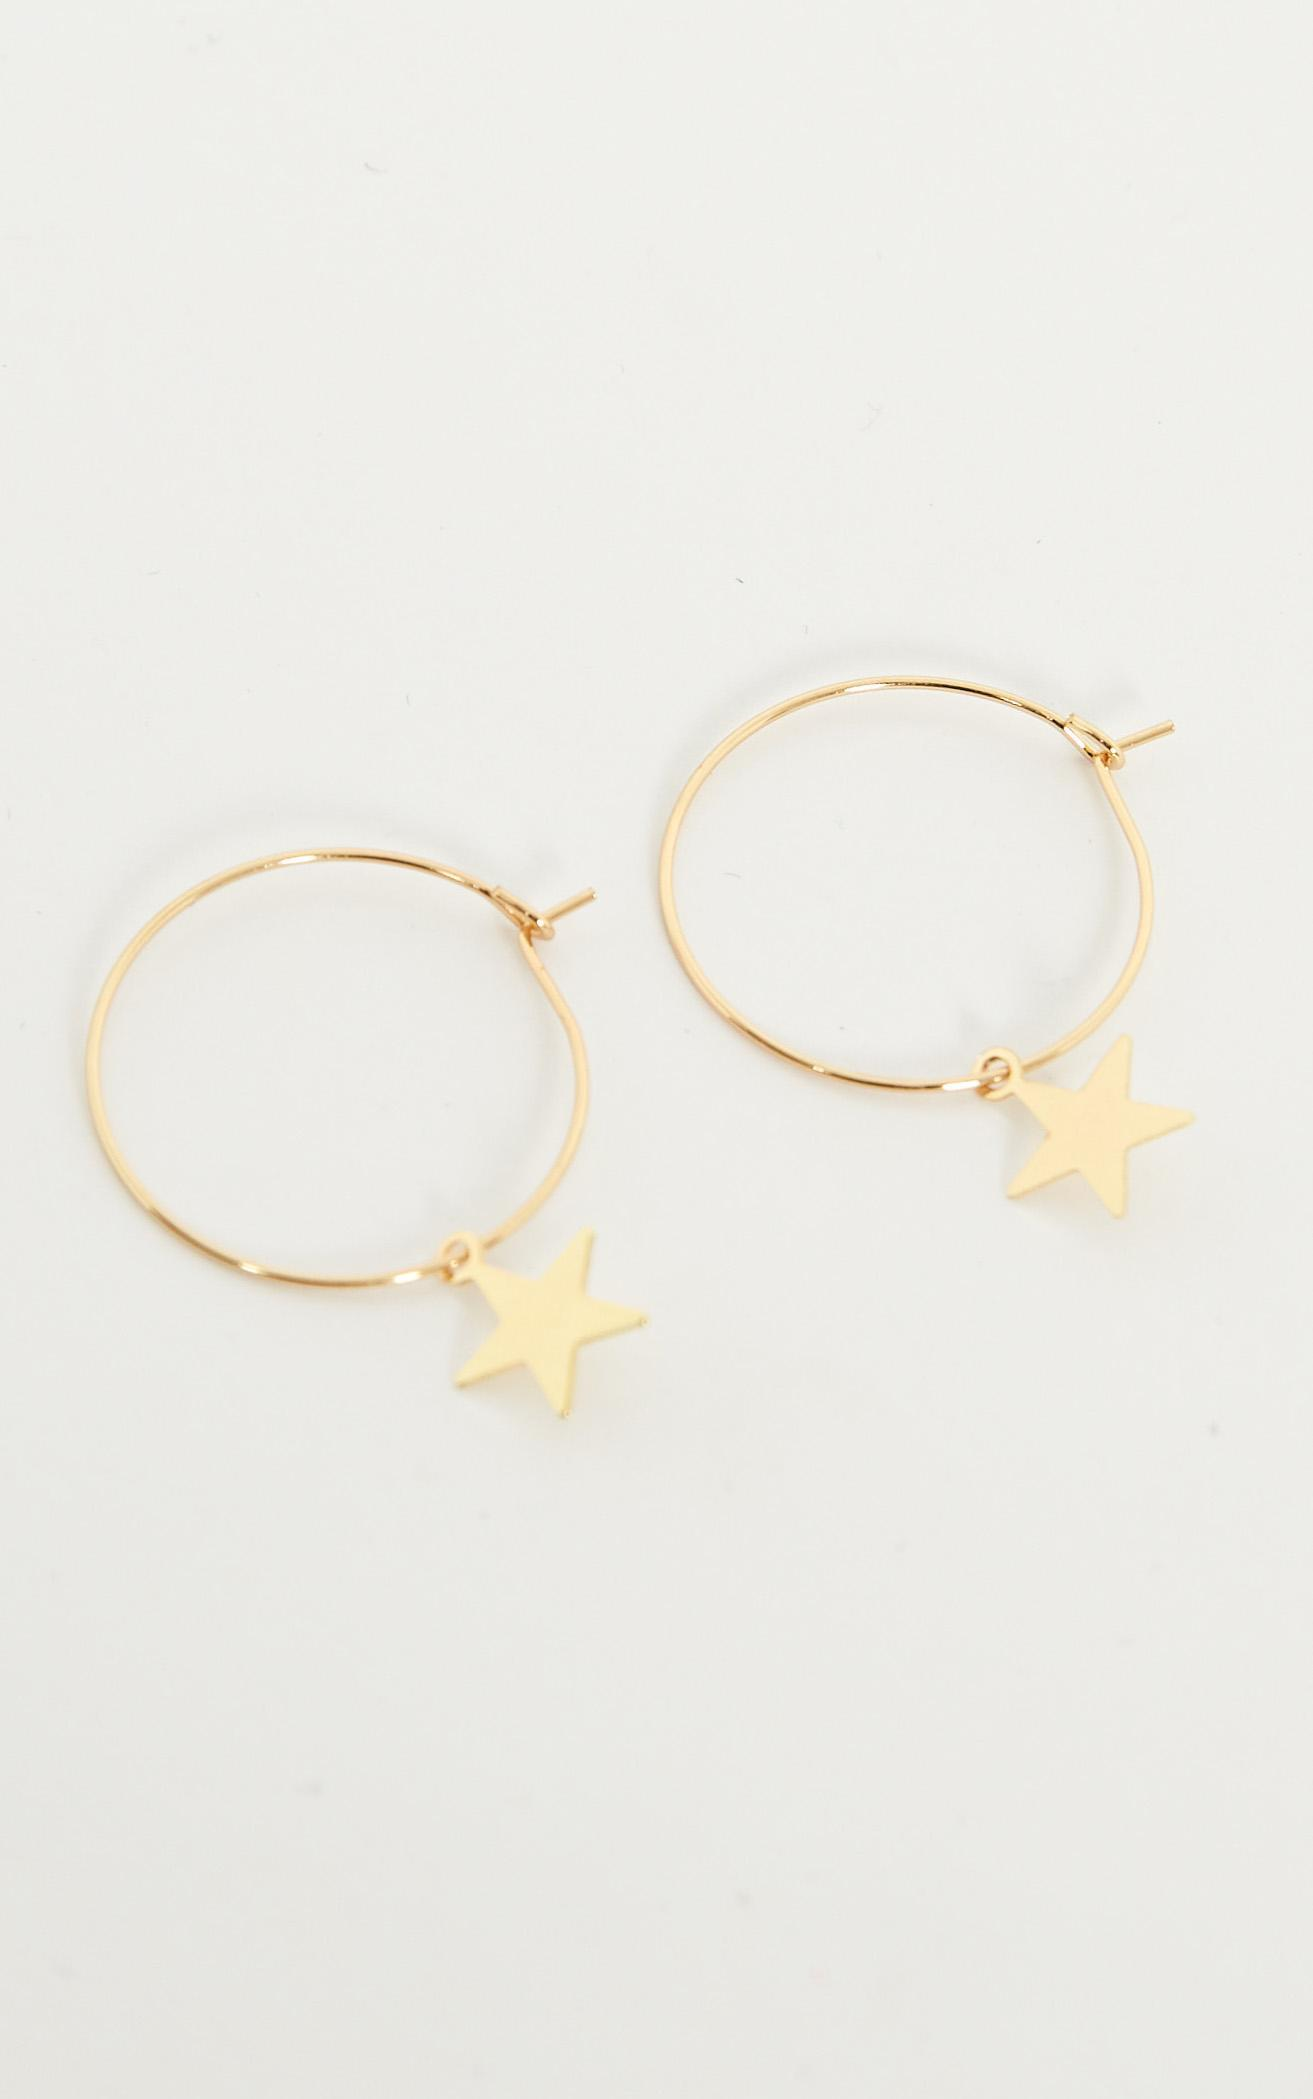 Follow Up Earrings in Gold, , hi-res image number null